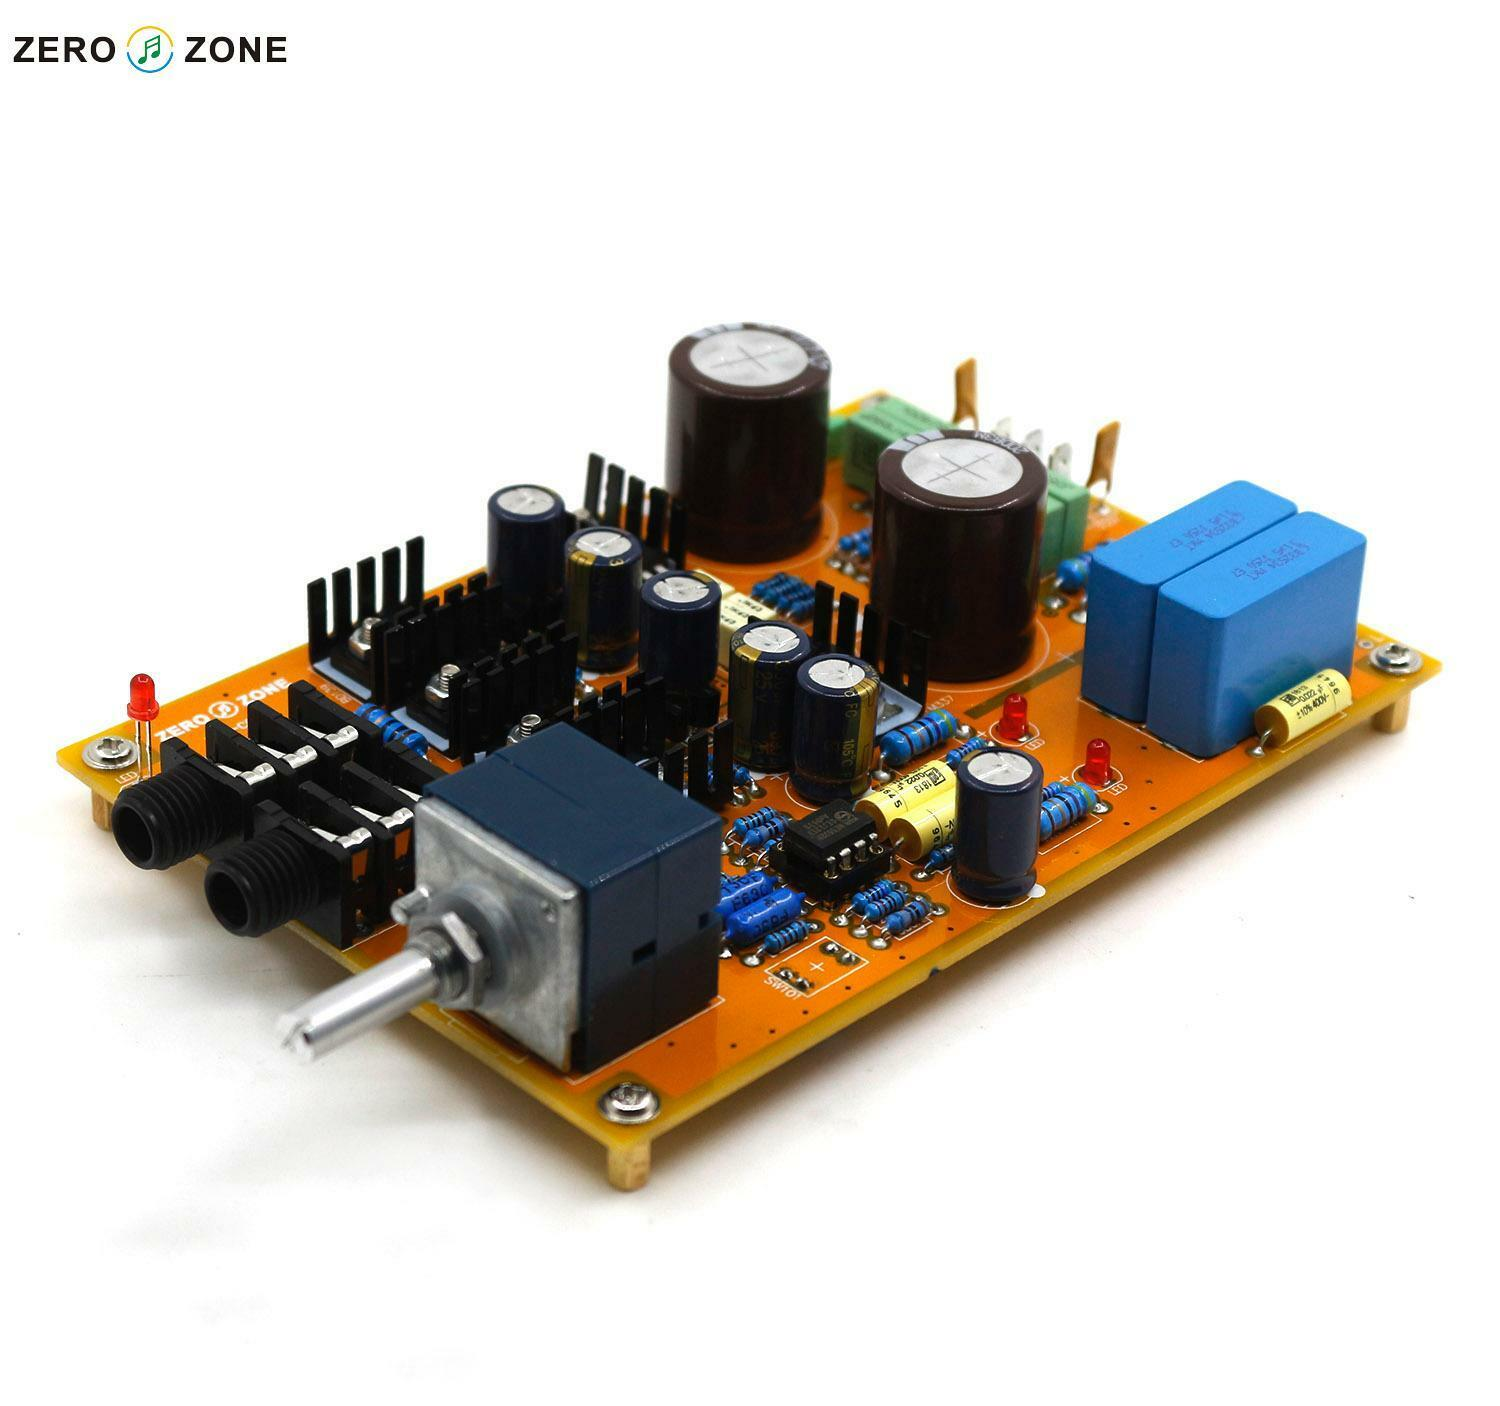 Headphone Amplifier Preamp Board Kit Base On Lehmann Linear Amp Circuit With Alps Pot Operating Voltage Recommended Ac15v 0 Pcb Specifications 105 150mm